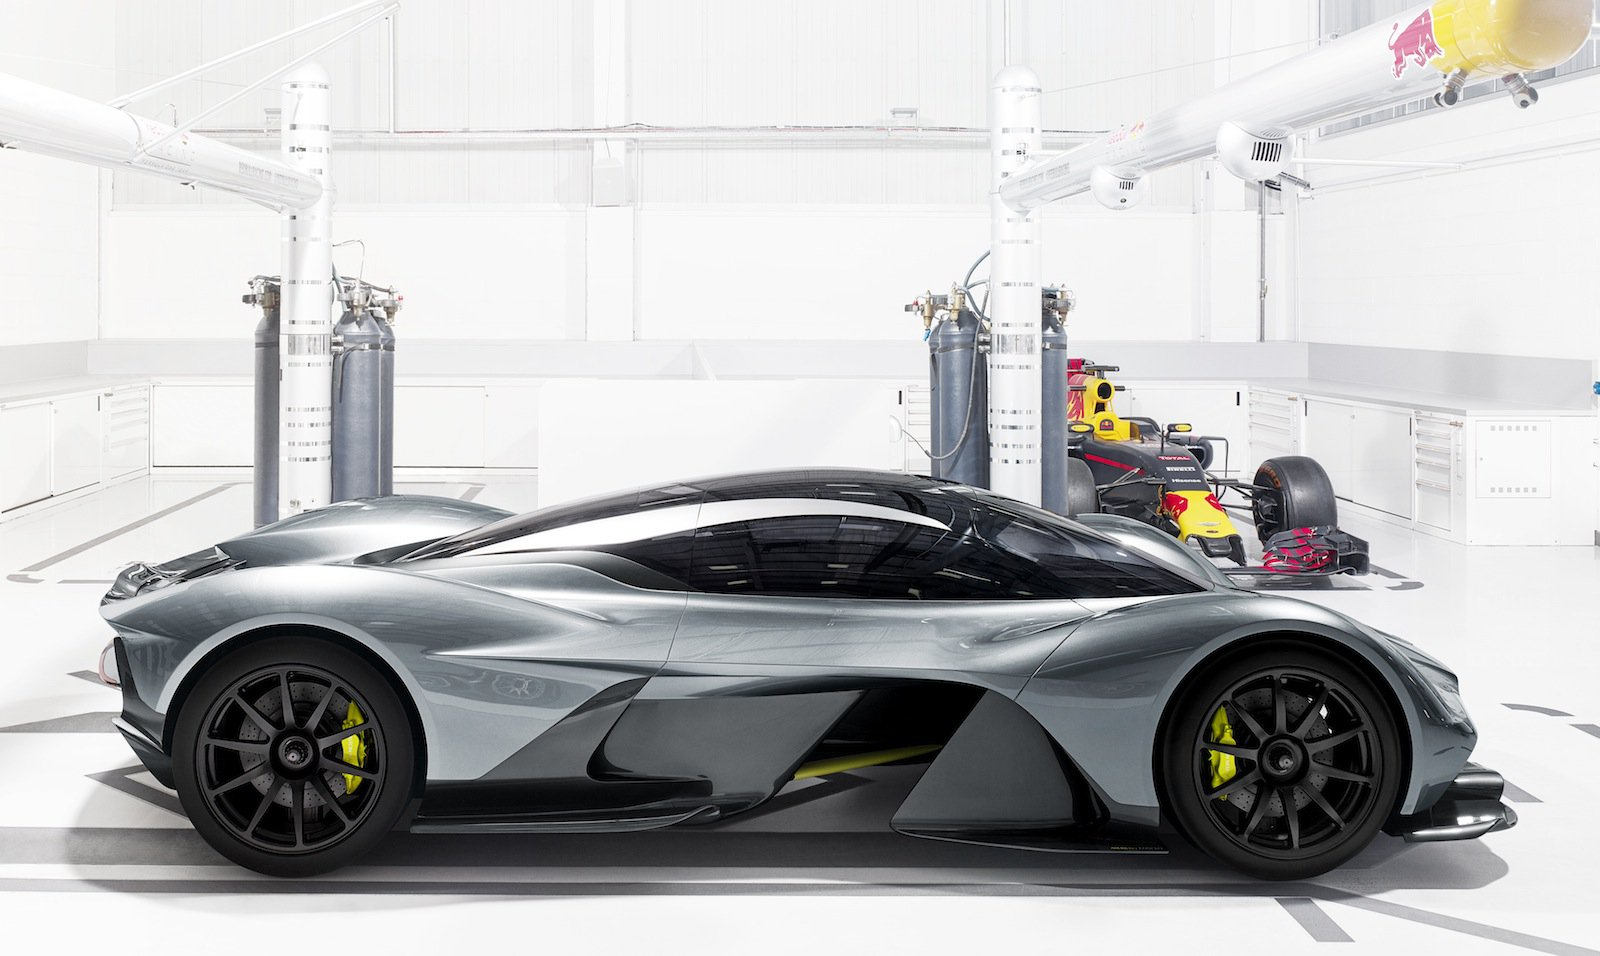 The Guy Who Designed the McLaren F1 Says the AM-RB 001 is Impractical